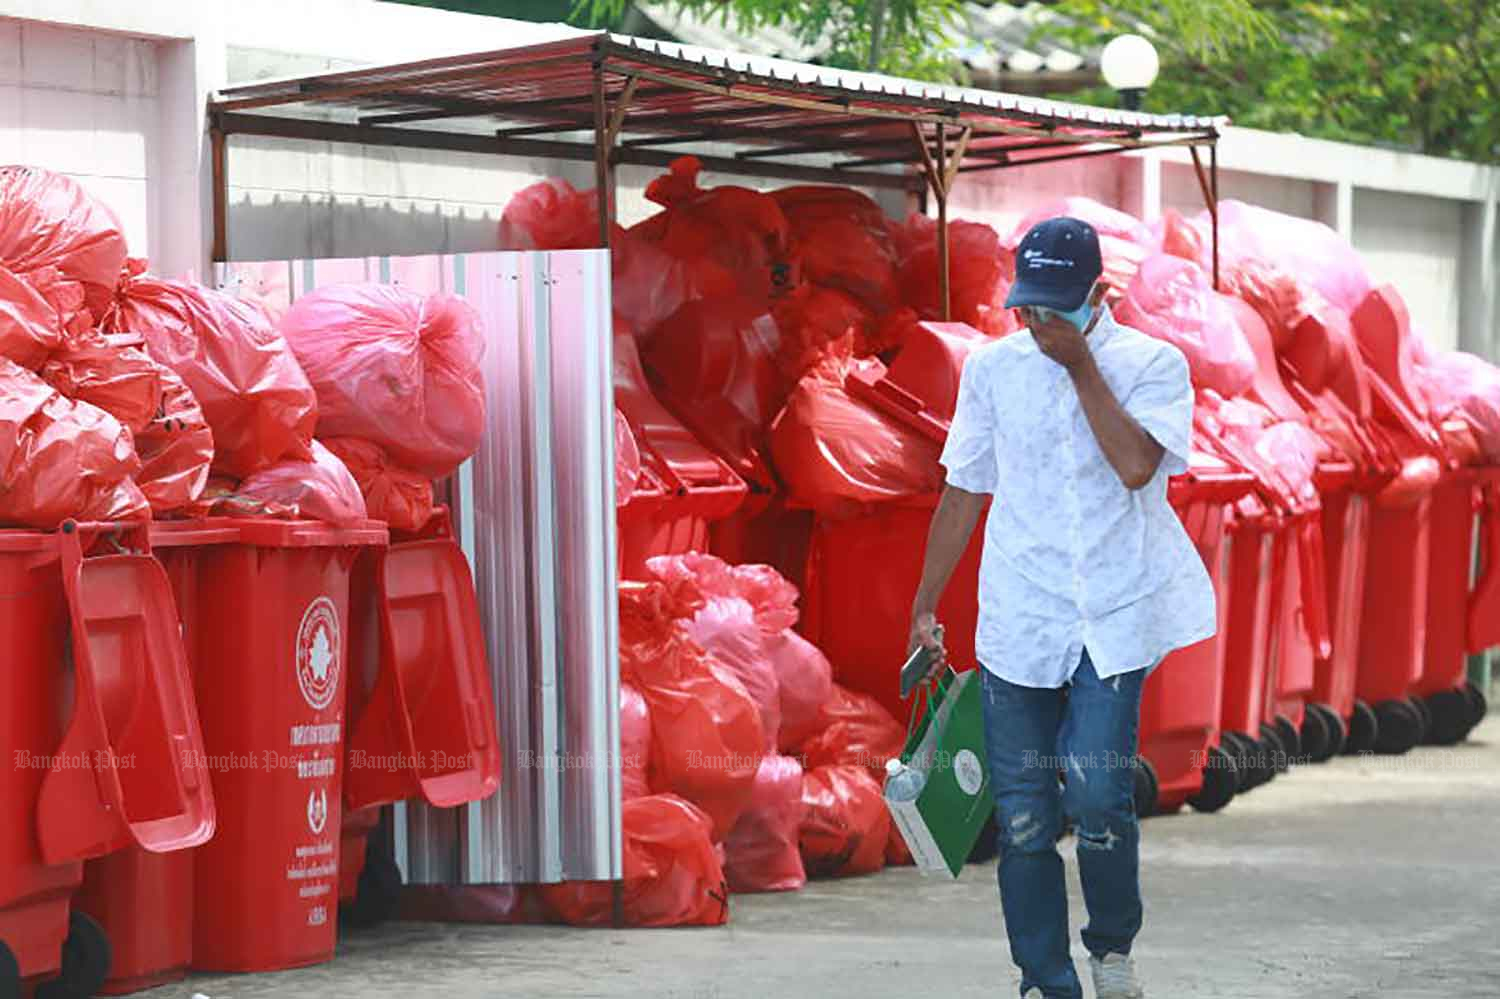 Temples barred from burning Covid waste